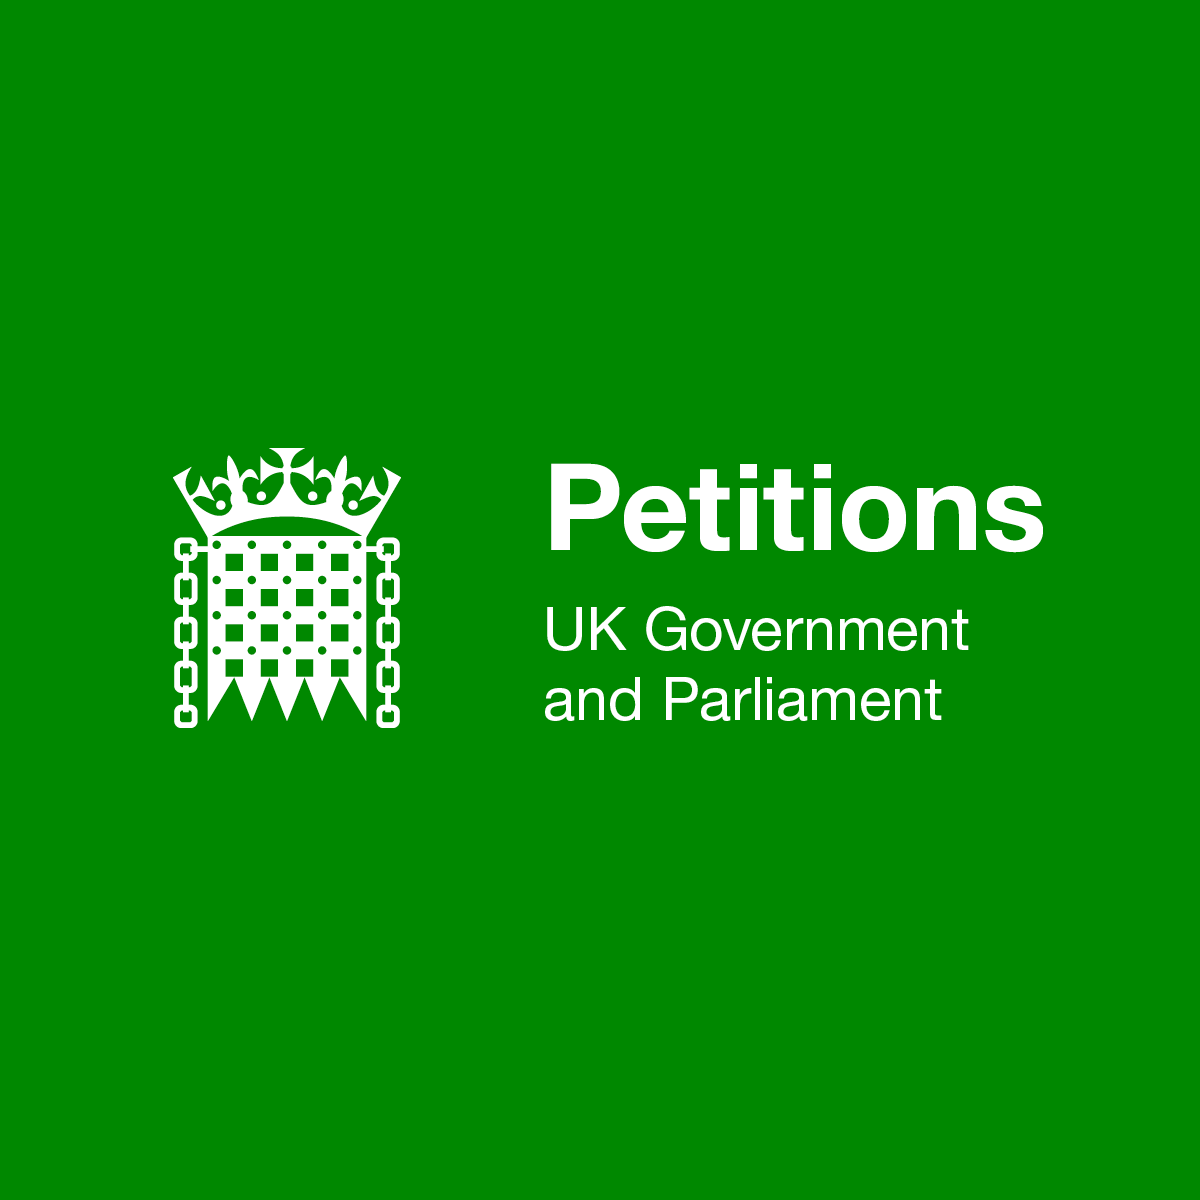 The UK Petition For Legalizing Cannabis Gaining Momentum